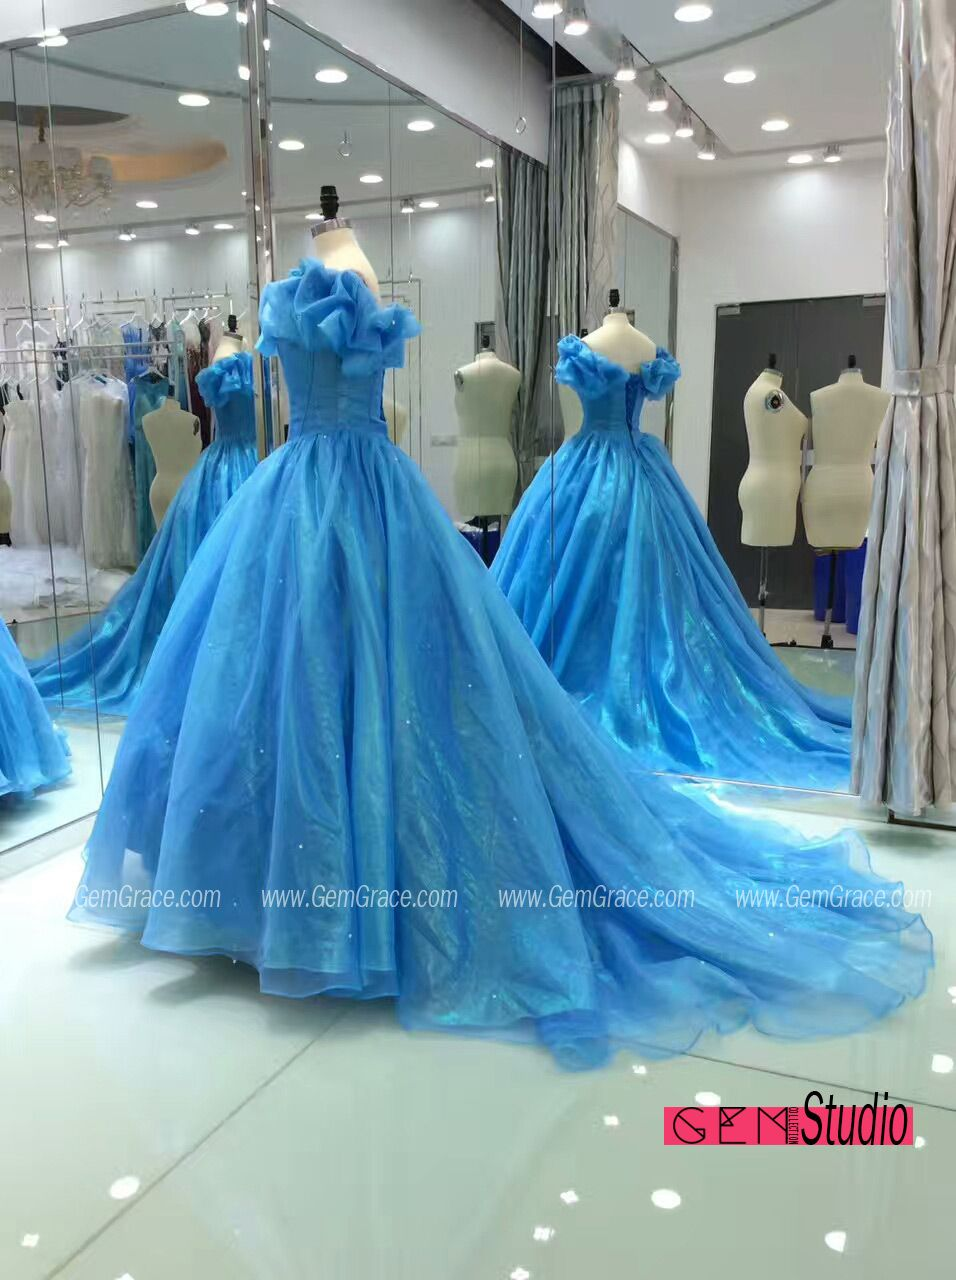 Blue ballgown off shoulder cinderella wedding dress with train